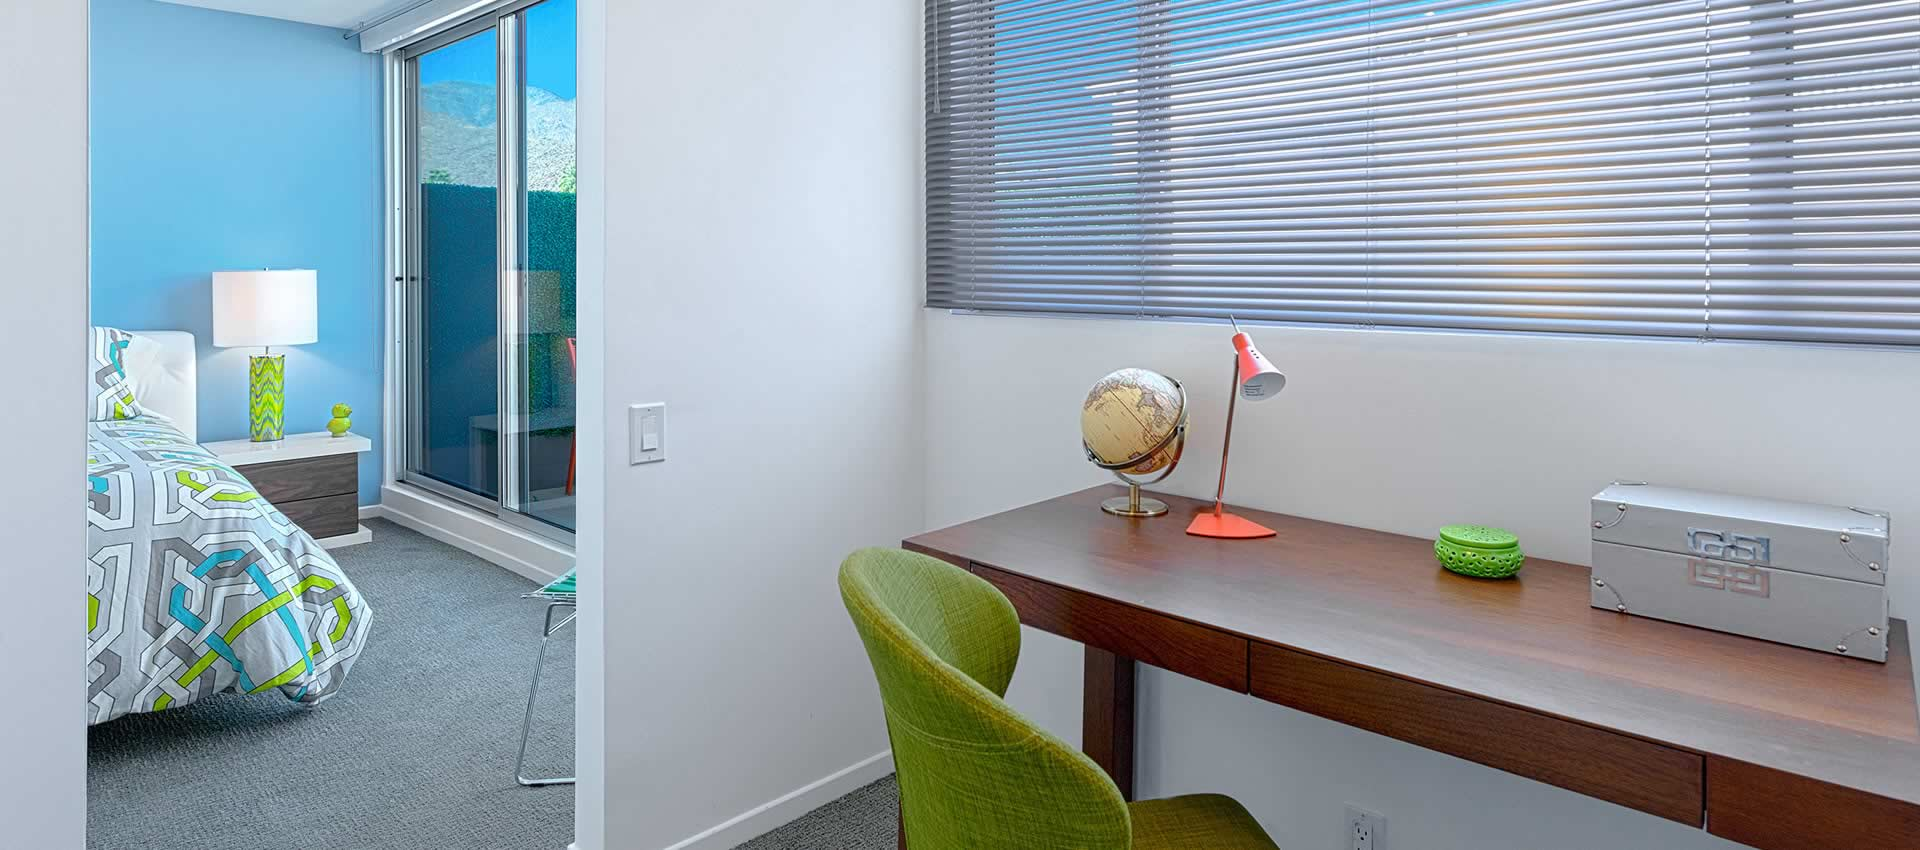 twist hotel room 216 work station desk with lamp just off the bedroom